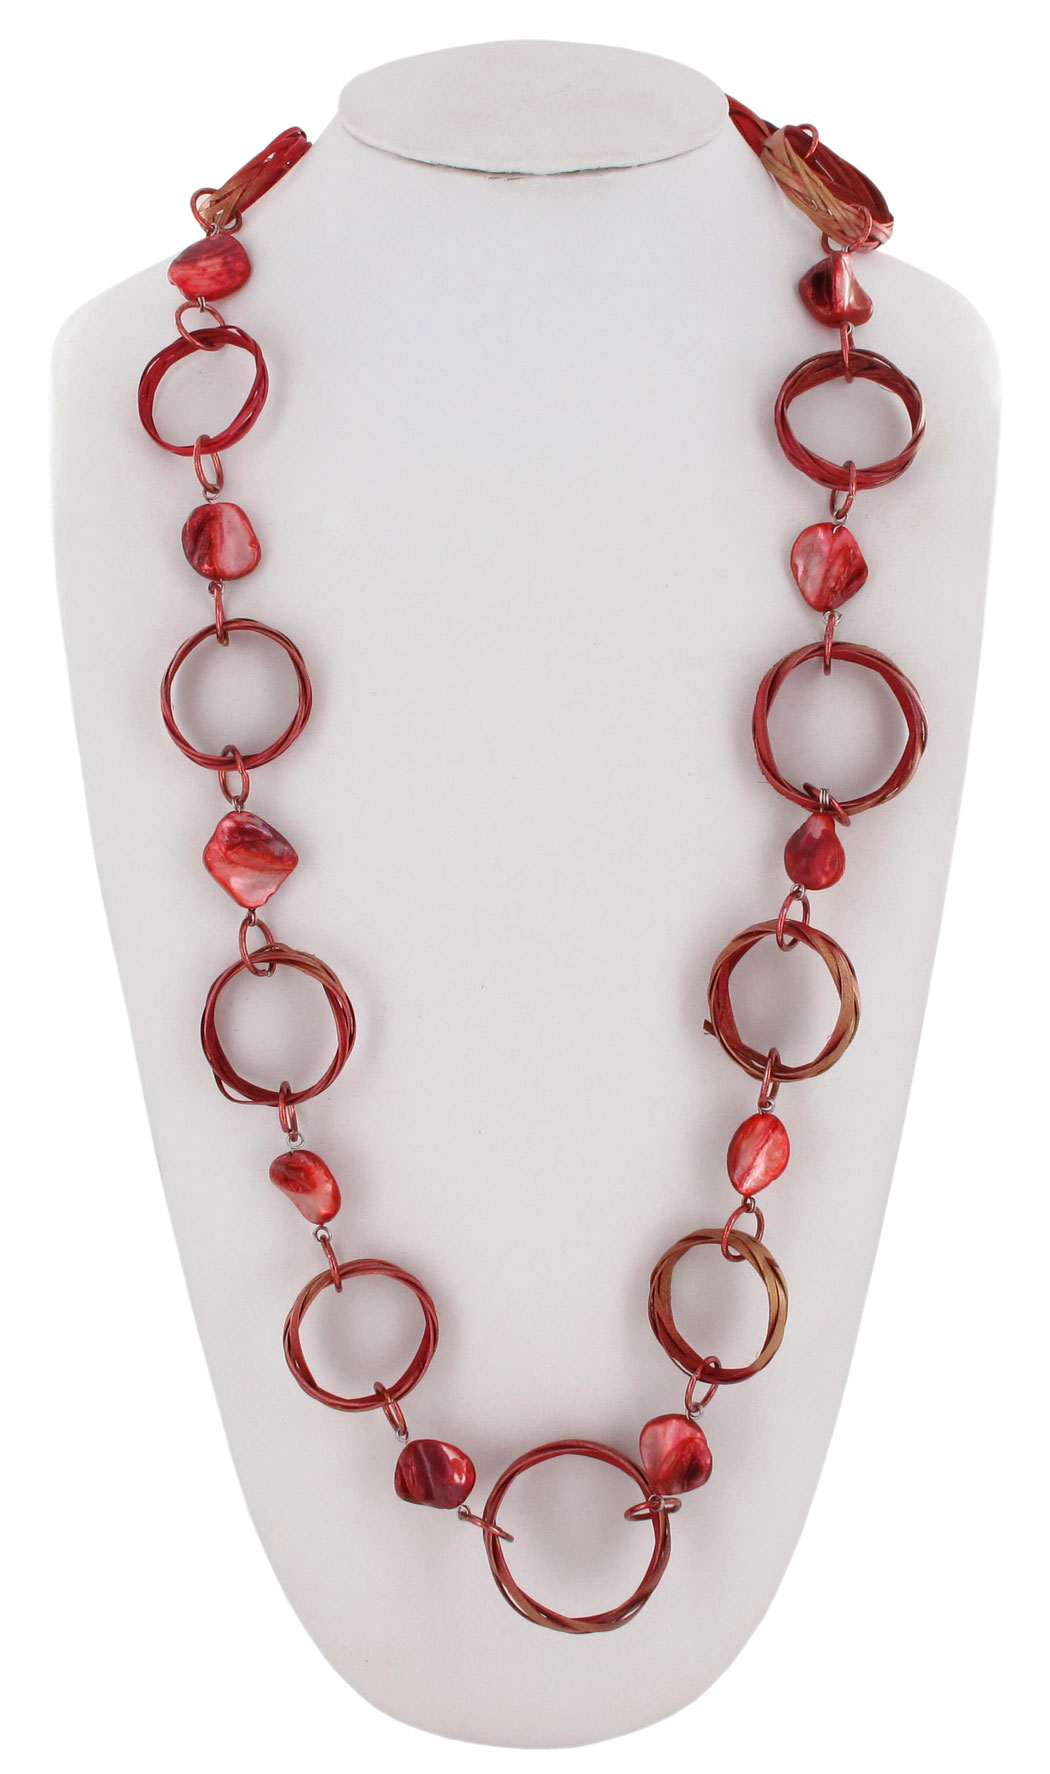 "Coldwater Creek Statement Necklace Long Raffia Wicker Ring Link 38"" Red Thumbnail 1"